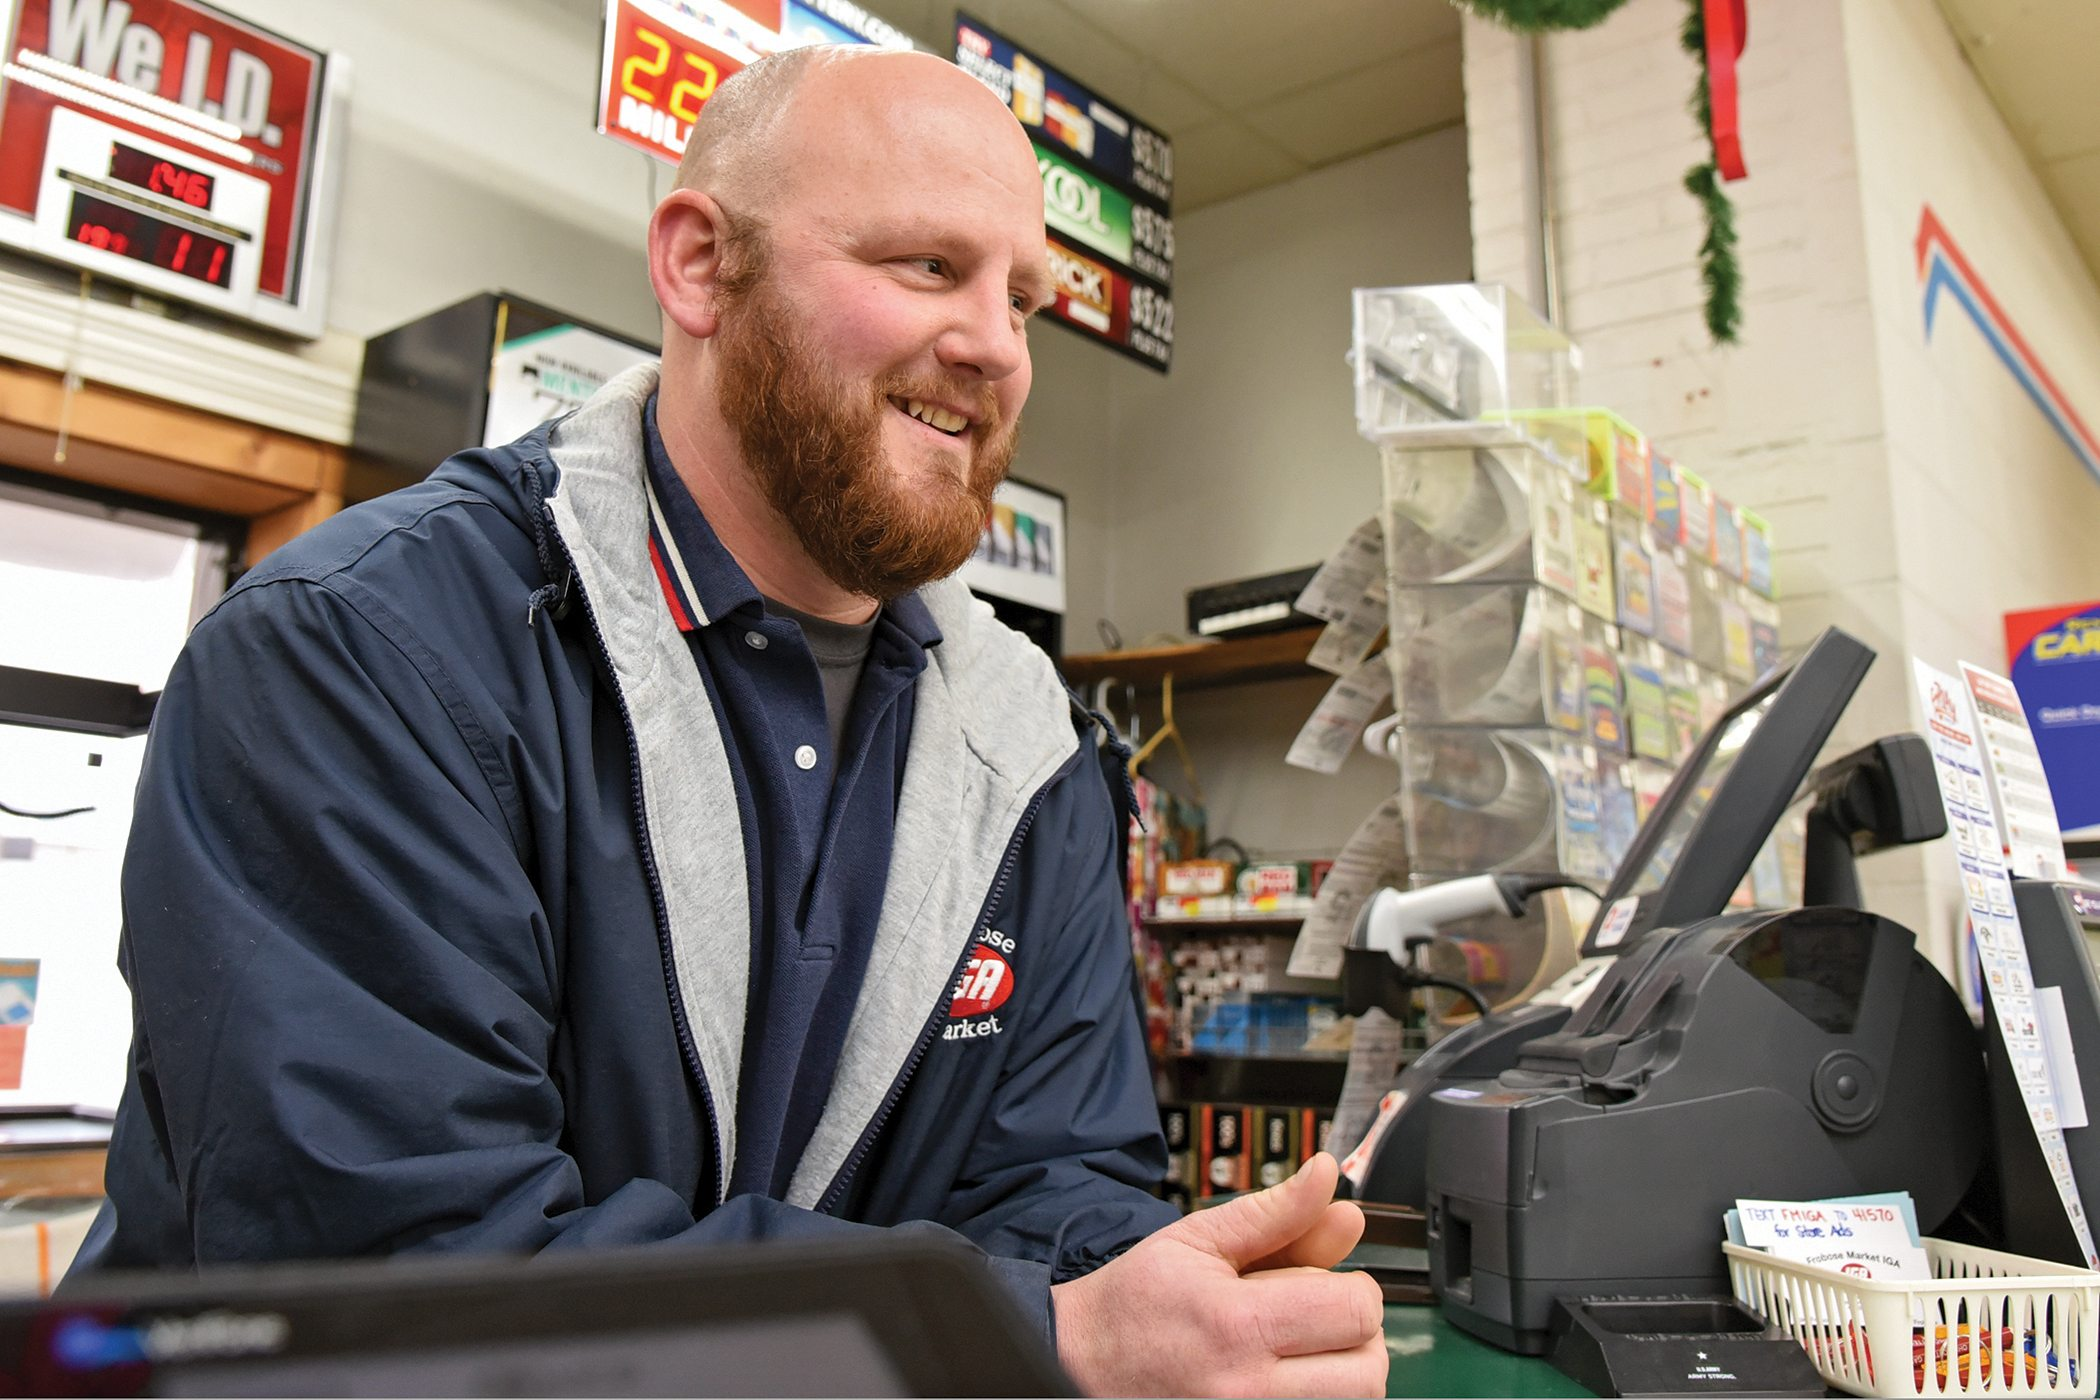 Jacob Frobose, Frobose Meat Locker's farm manager, fills in behind the customer service desk at the family's IGA -affiliated grocery store in Pemberville, Ohio, Monday, Dec. 11, 2017. (Photograph by Peggy Turbett for the Ohio Farm Bureau)